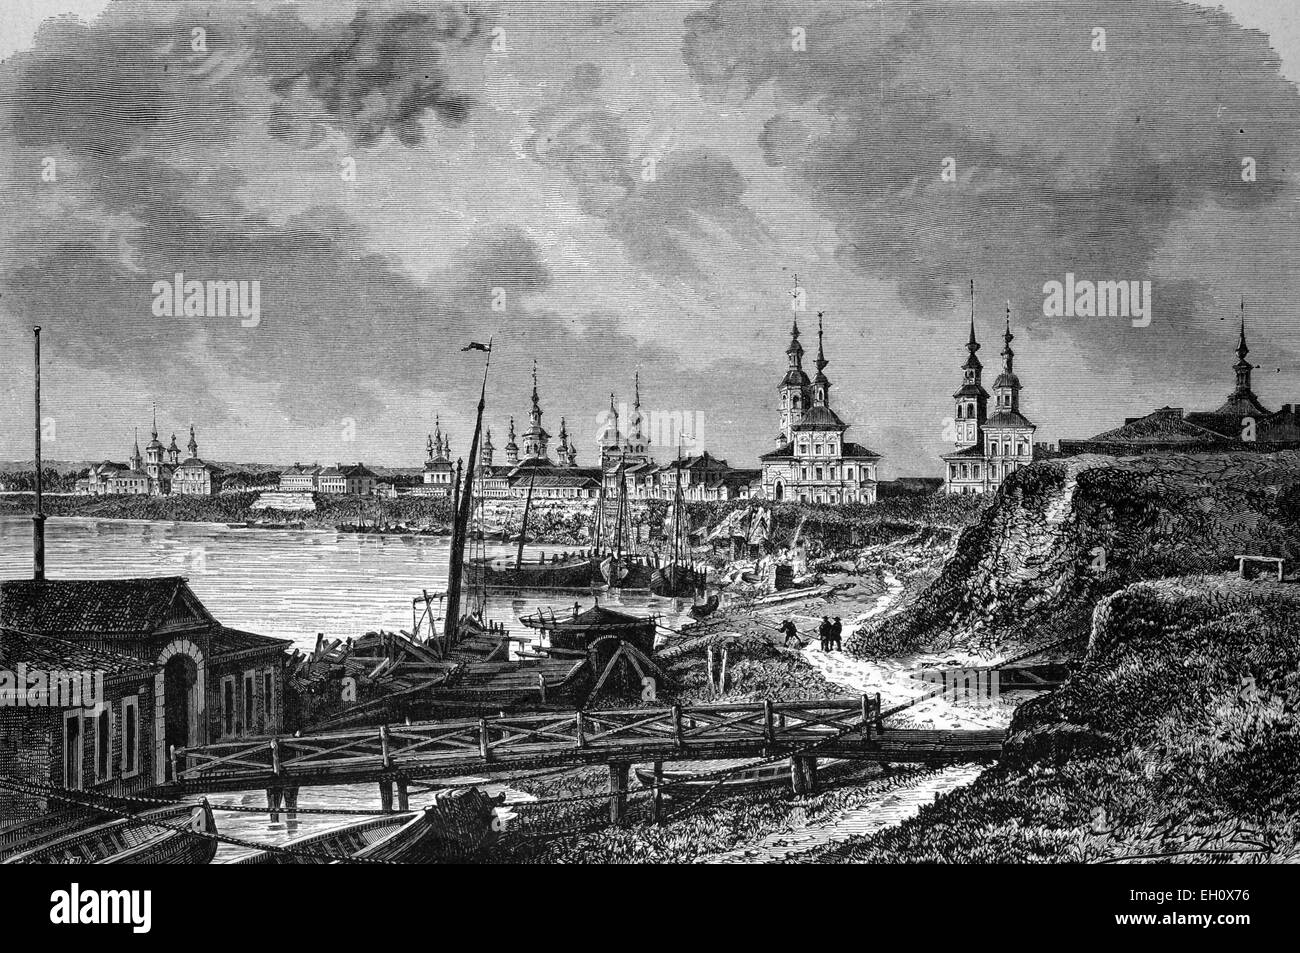 Arkhangelsk in northern Russia, historical illustration, circa 1886 - Stock Image